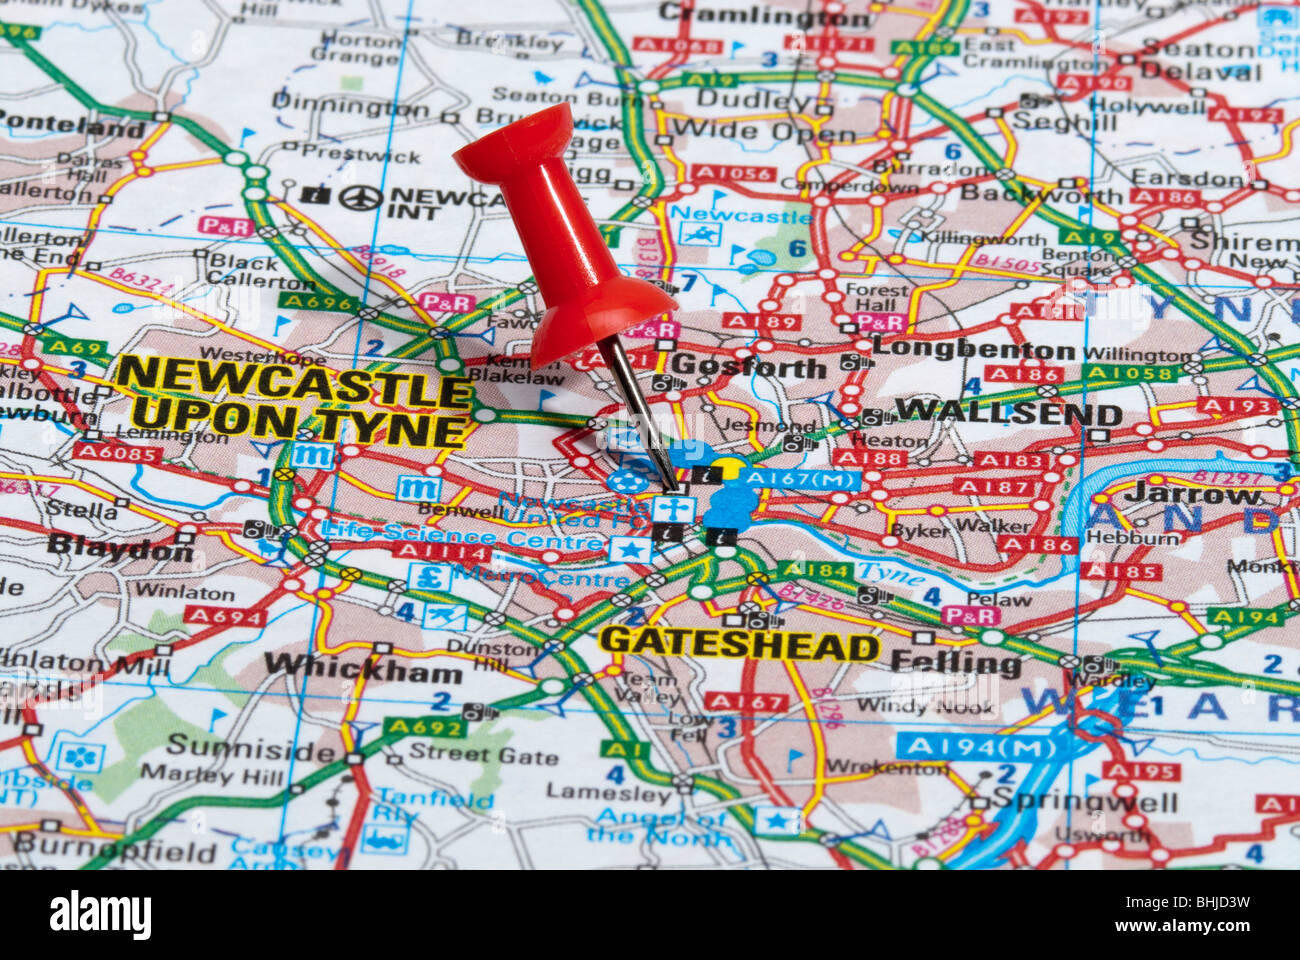 red map pin in road map pointing to city of Newcastle upon Tyne